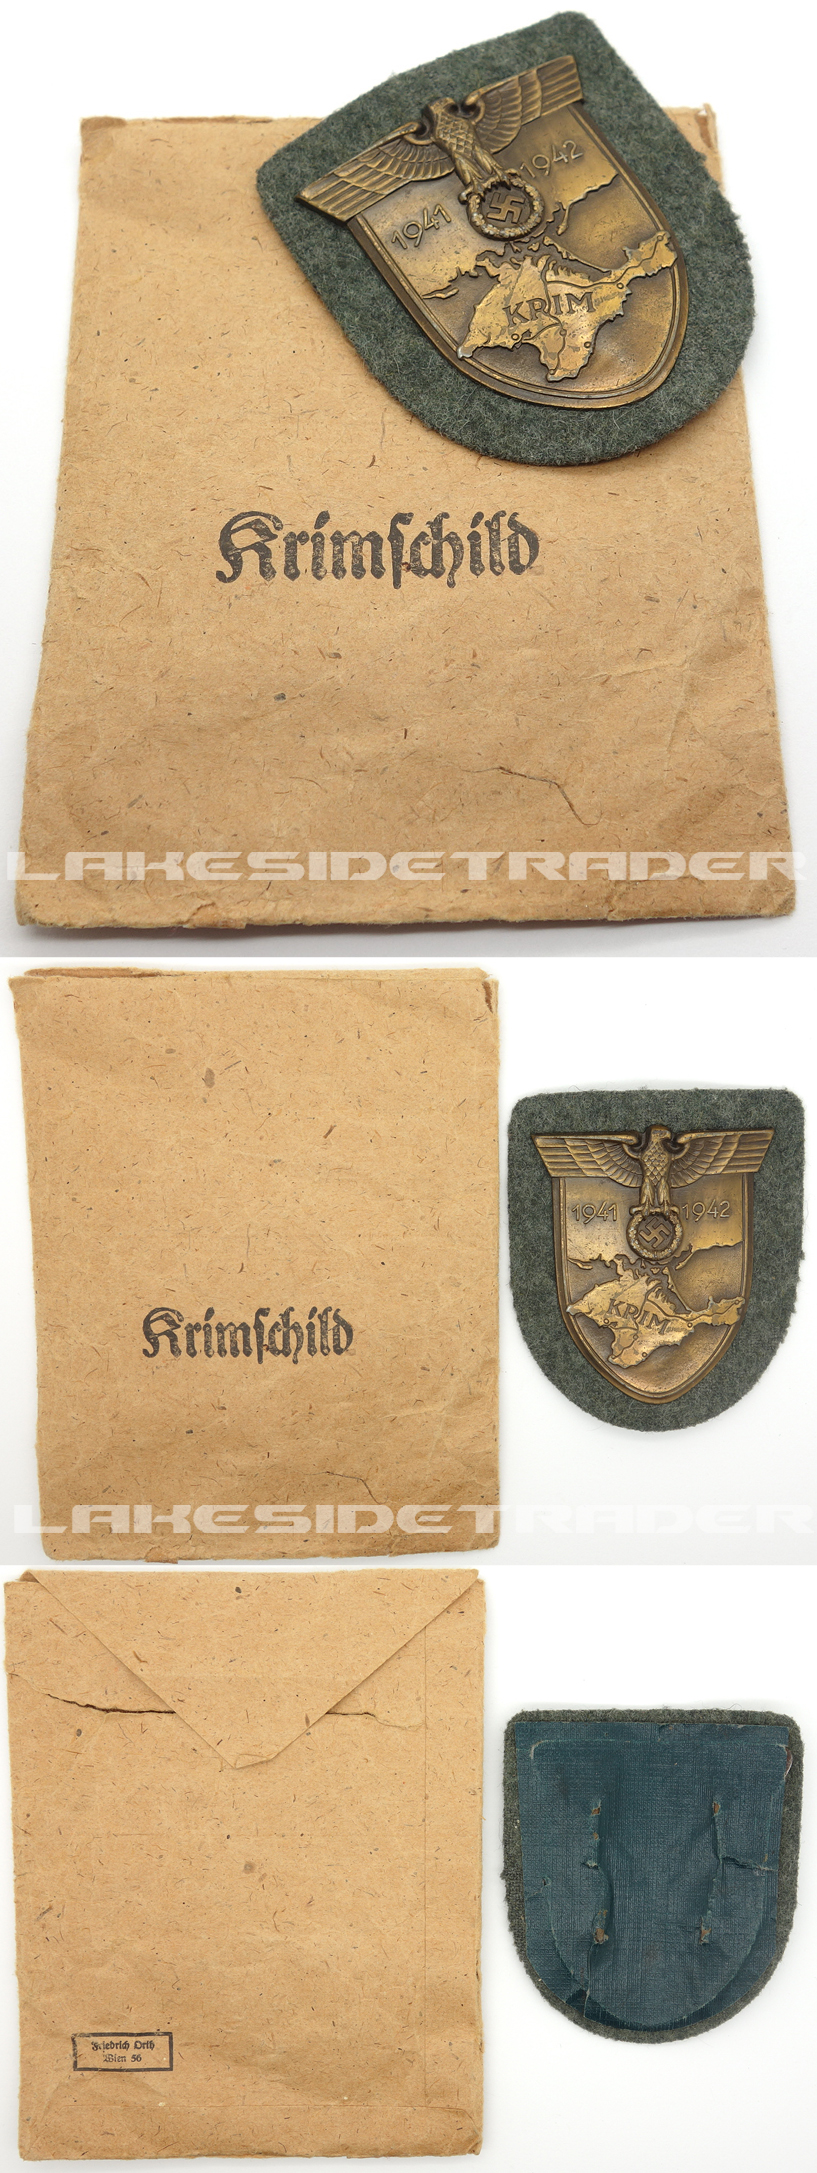 Army Krim Campaign Arm Shield by F. Orth in Issue Packet